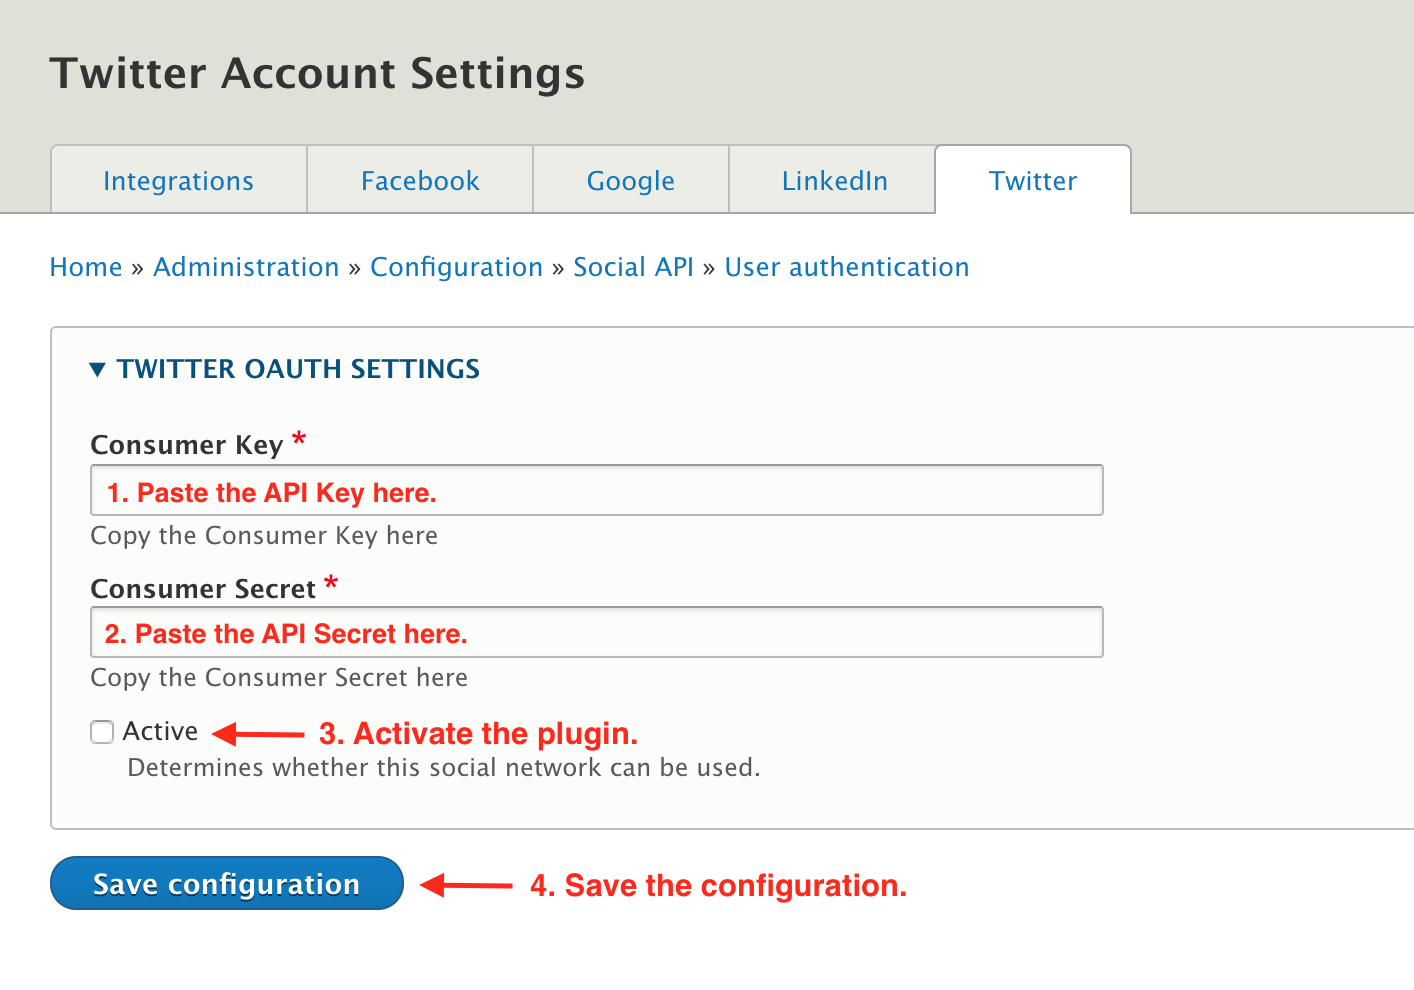 Twitter configuration settings